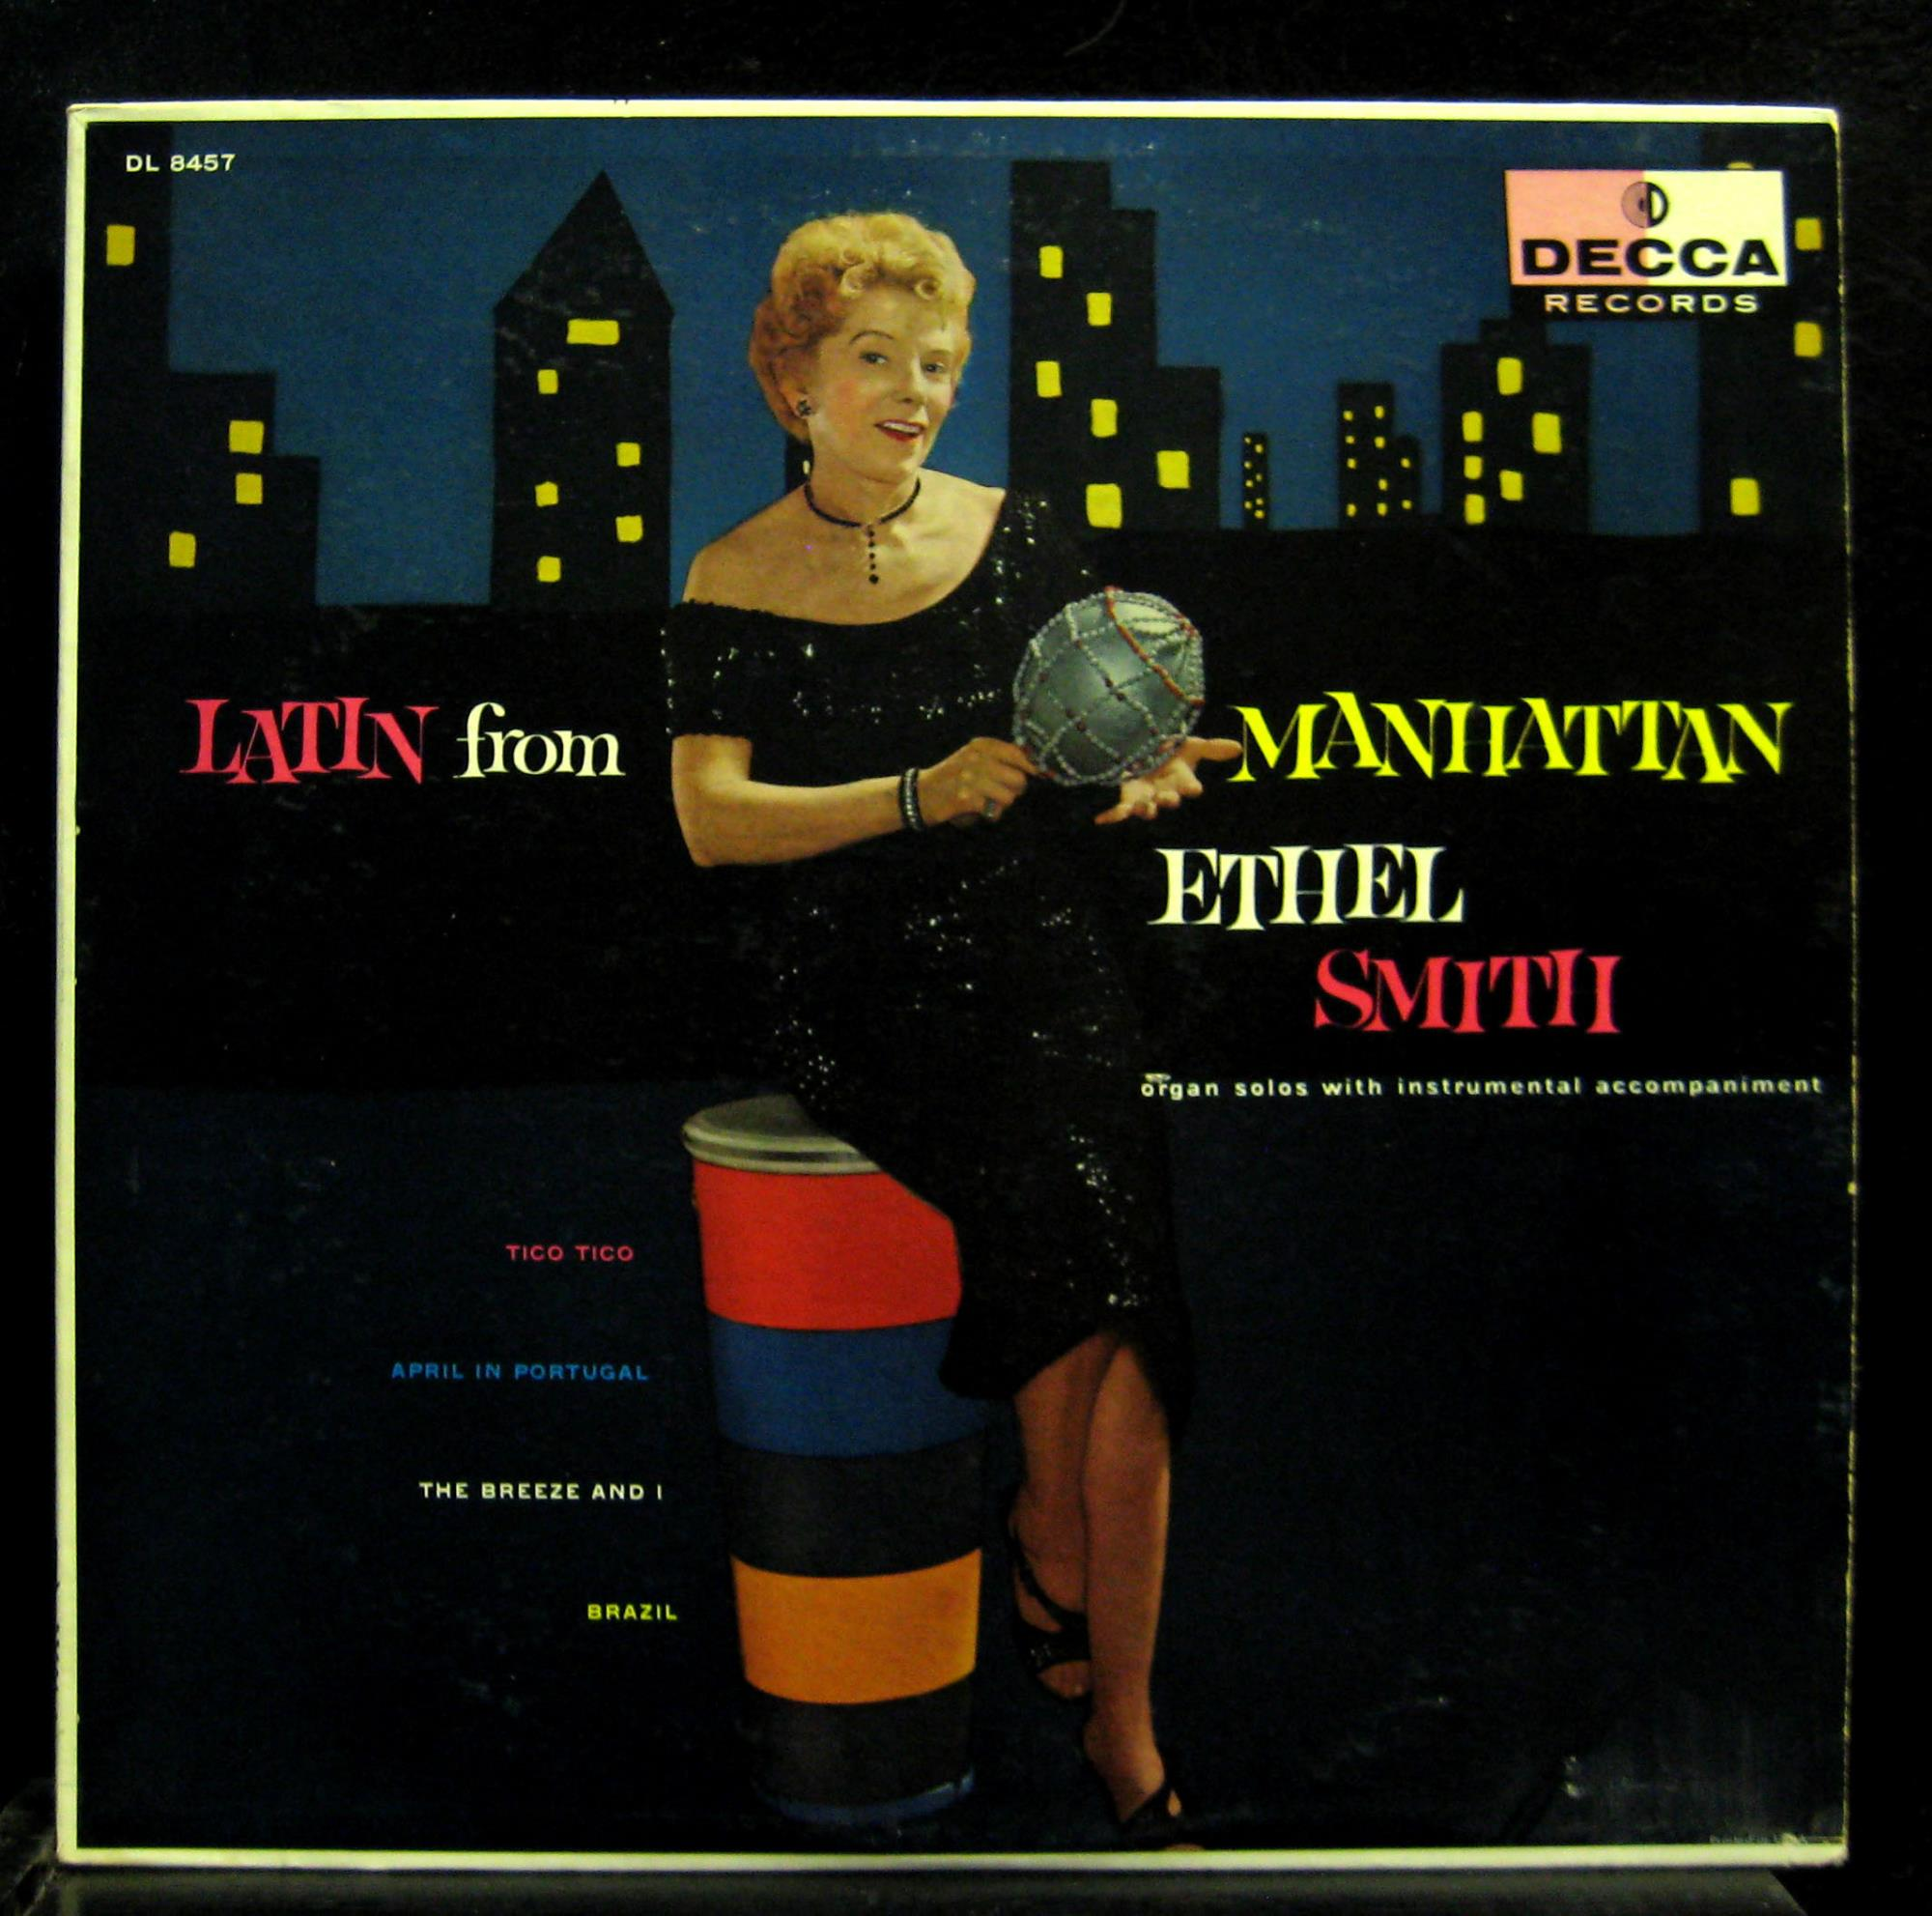 ethel latin singles Find ethel smith from a vast selection of ethel smith latin fire organ extravaganza lp sealed easy pop female vocal ethel smith- 78rpm single 10-inch.